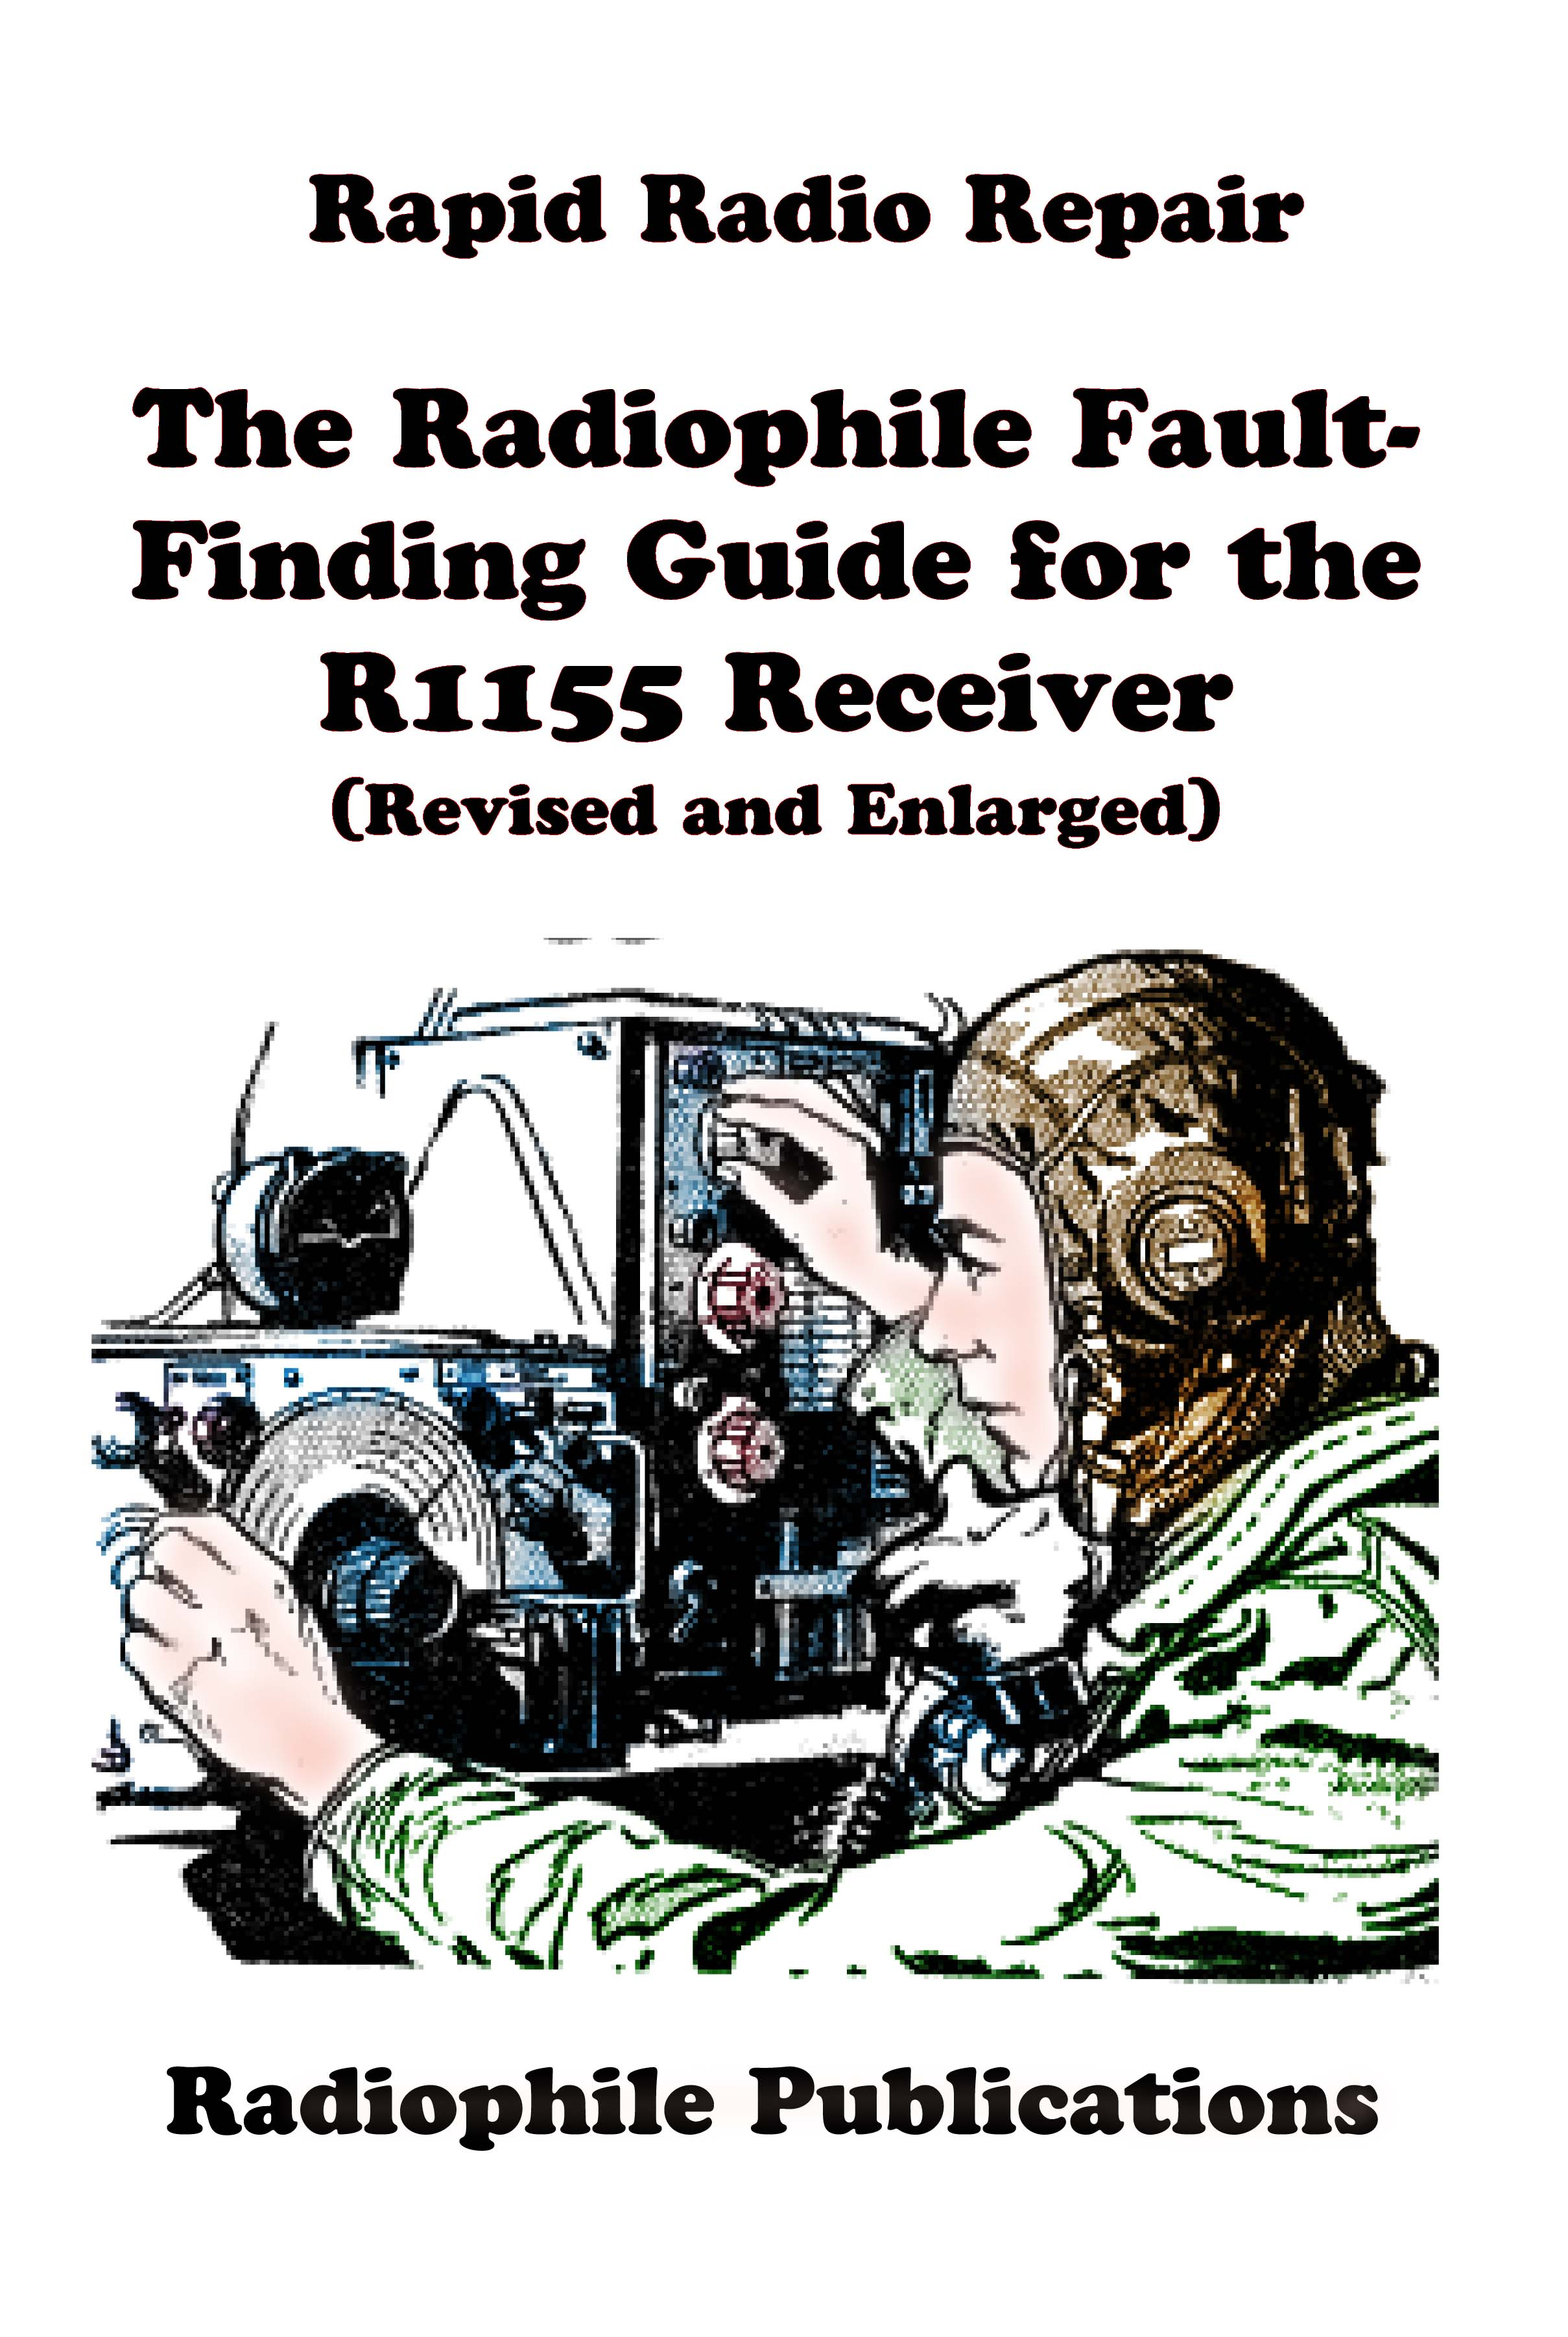 Fault Finding Guide R1115 - PDF